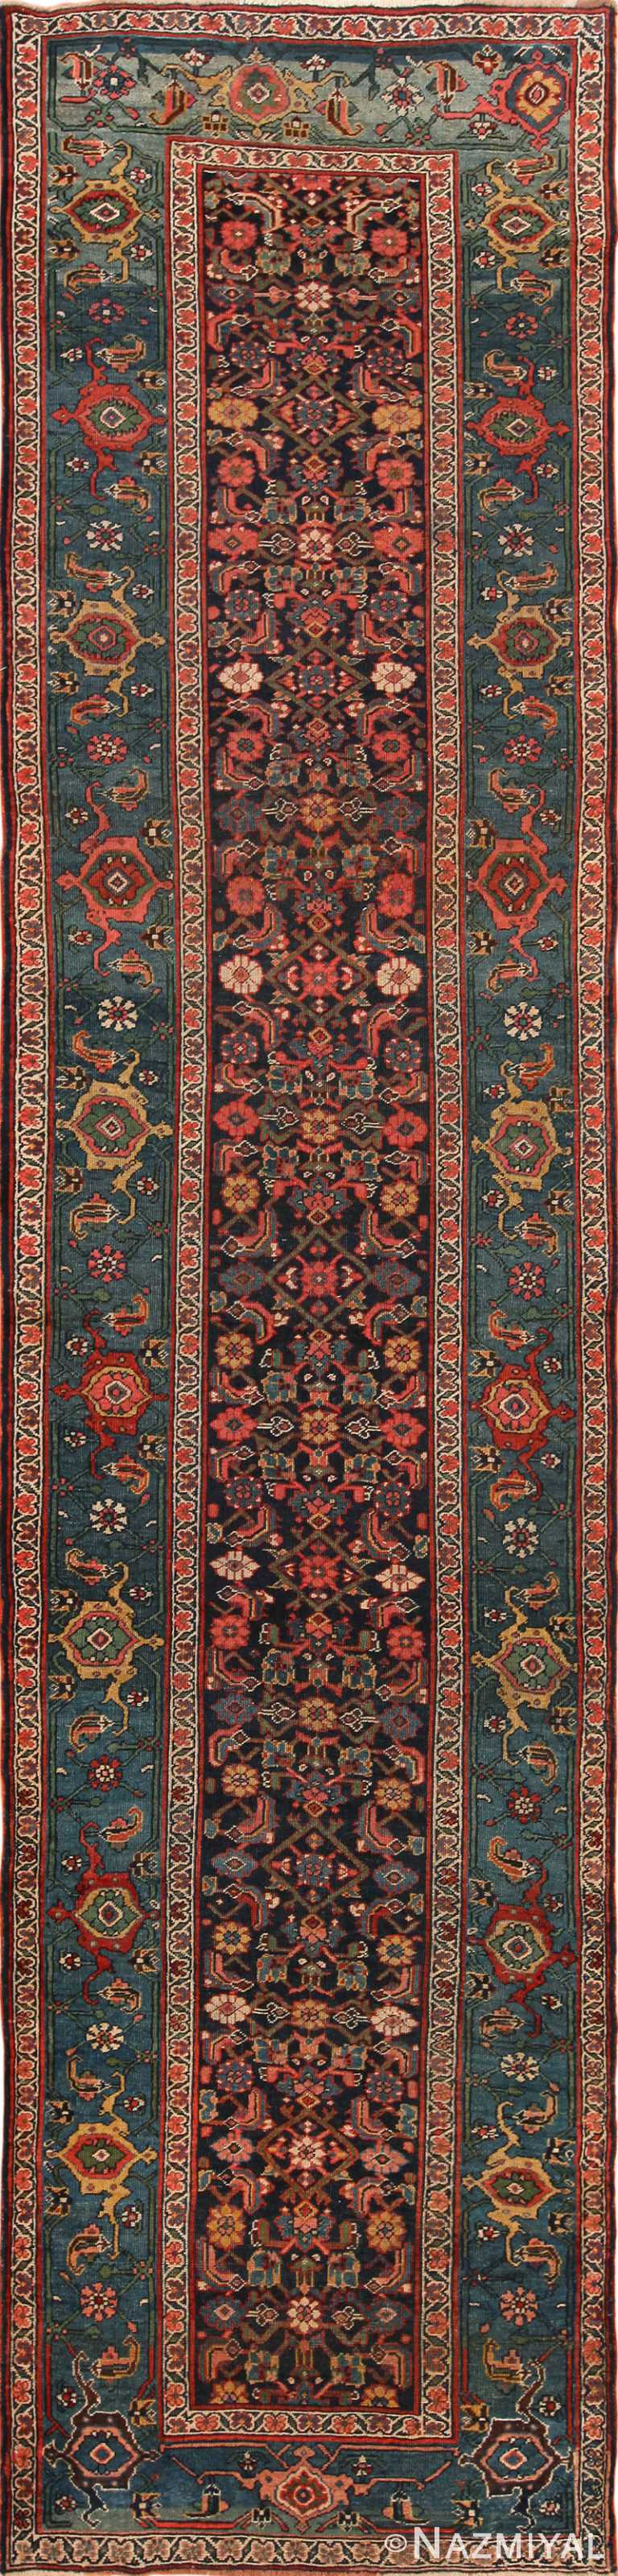 Antique Bidjar Persian Rug 70295 by Nazmiyal NYC